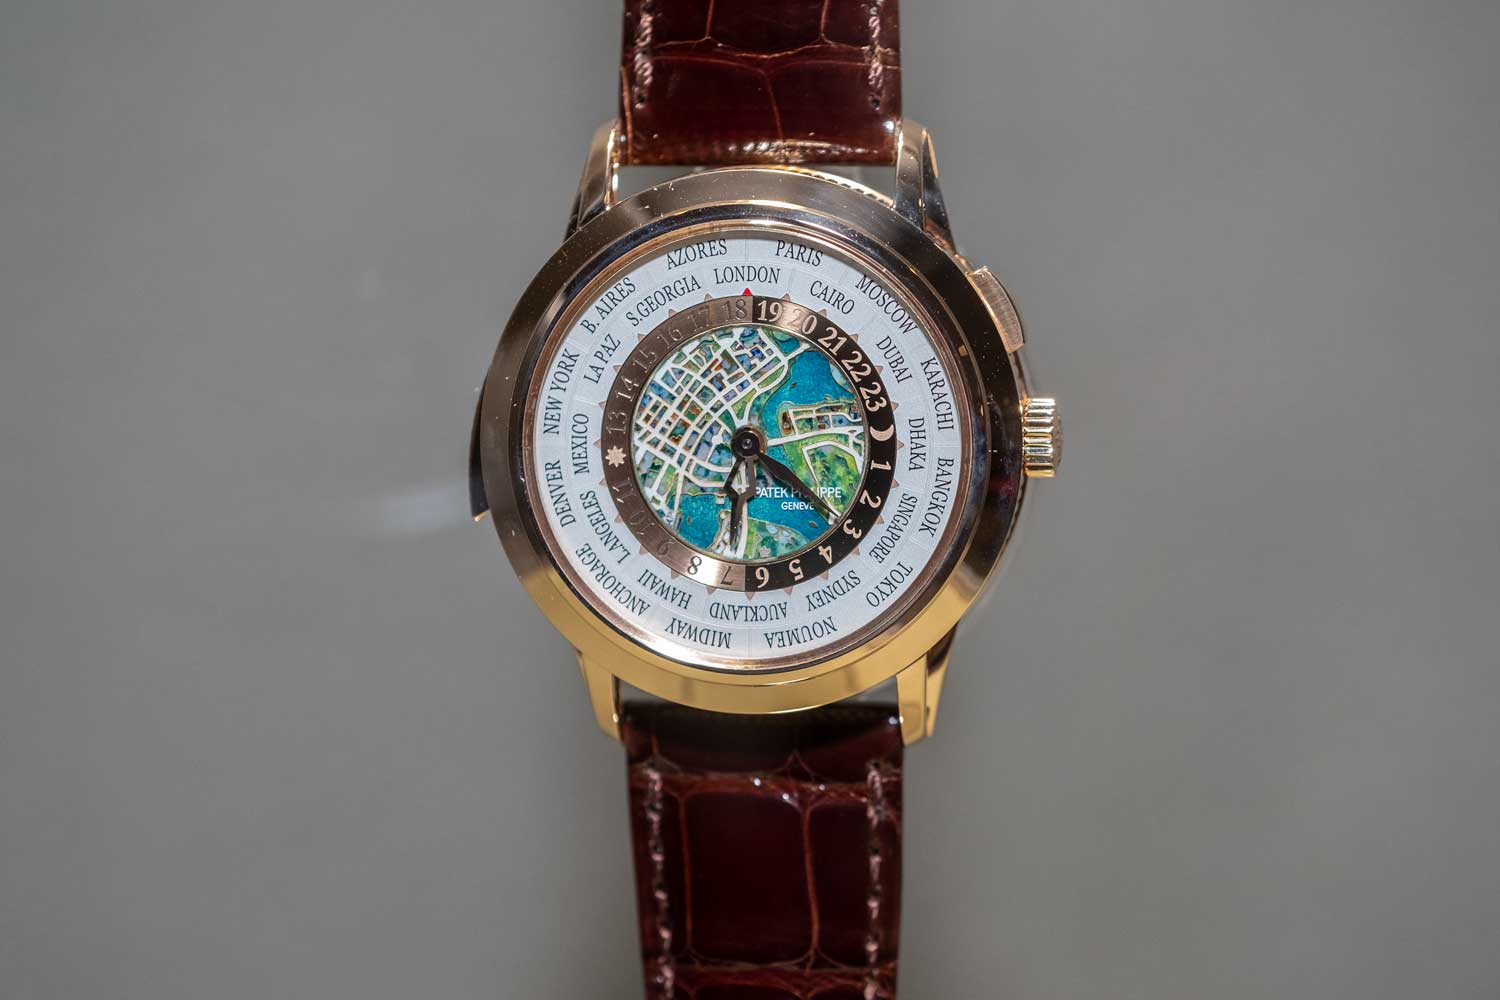 Patek Philippe World Time Minute Repeater Ref. 5531